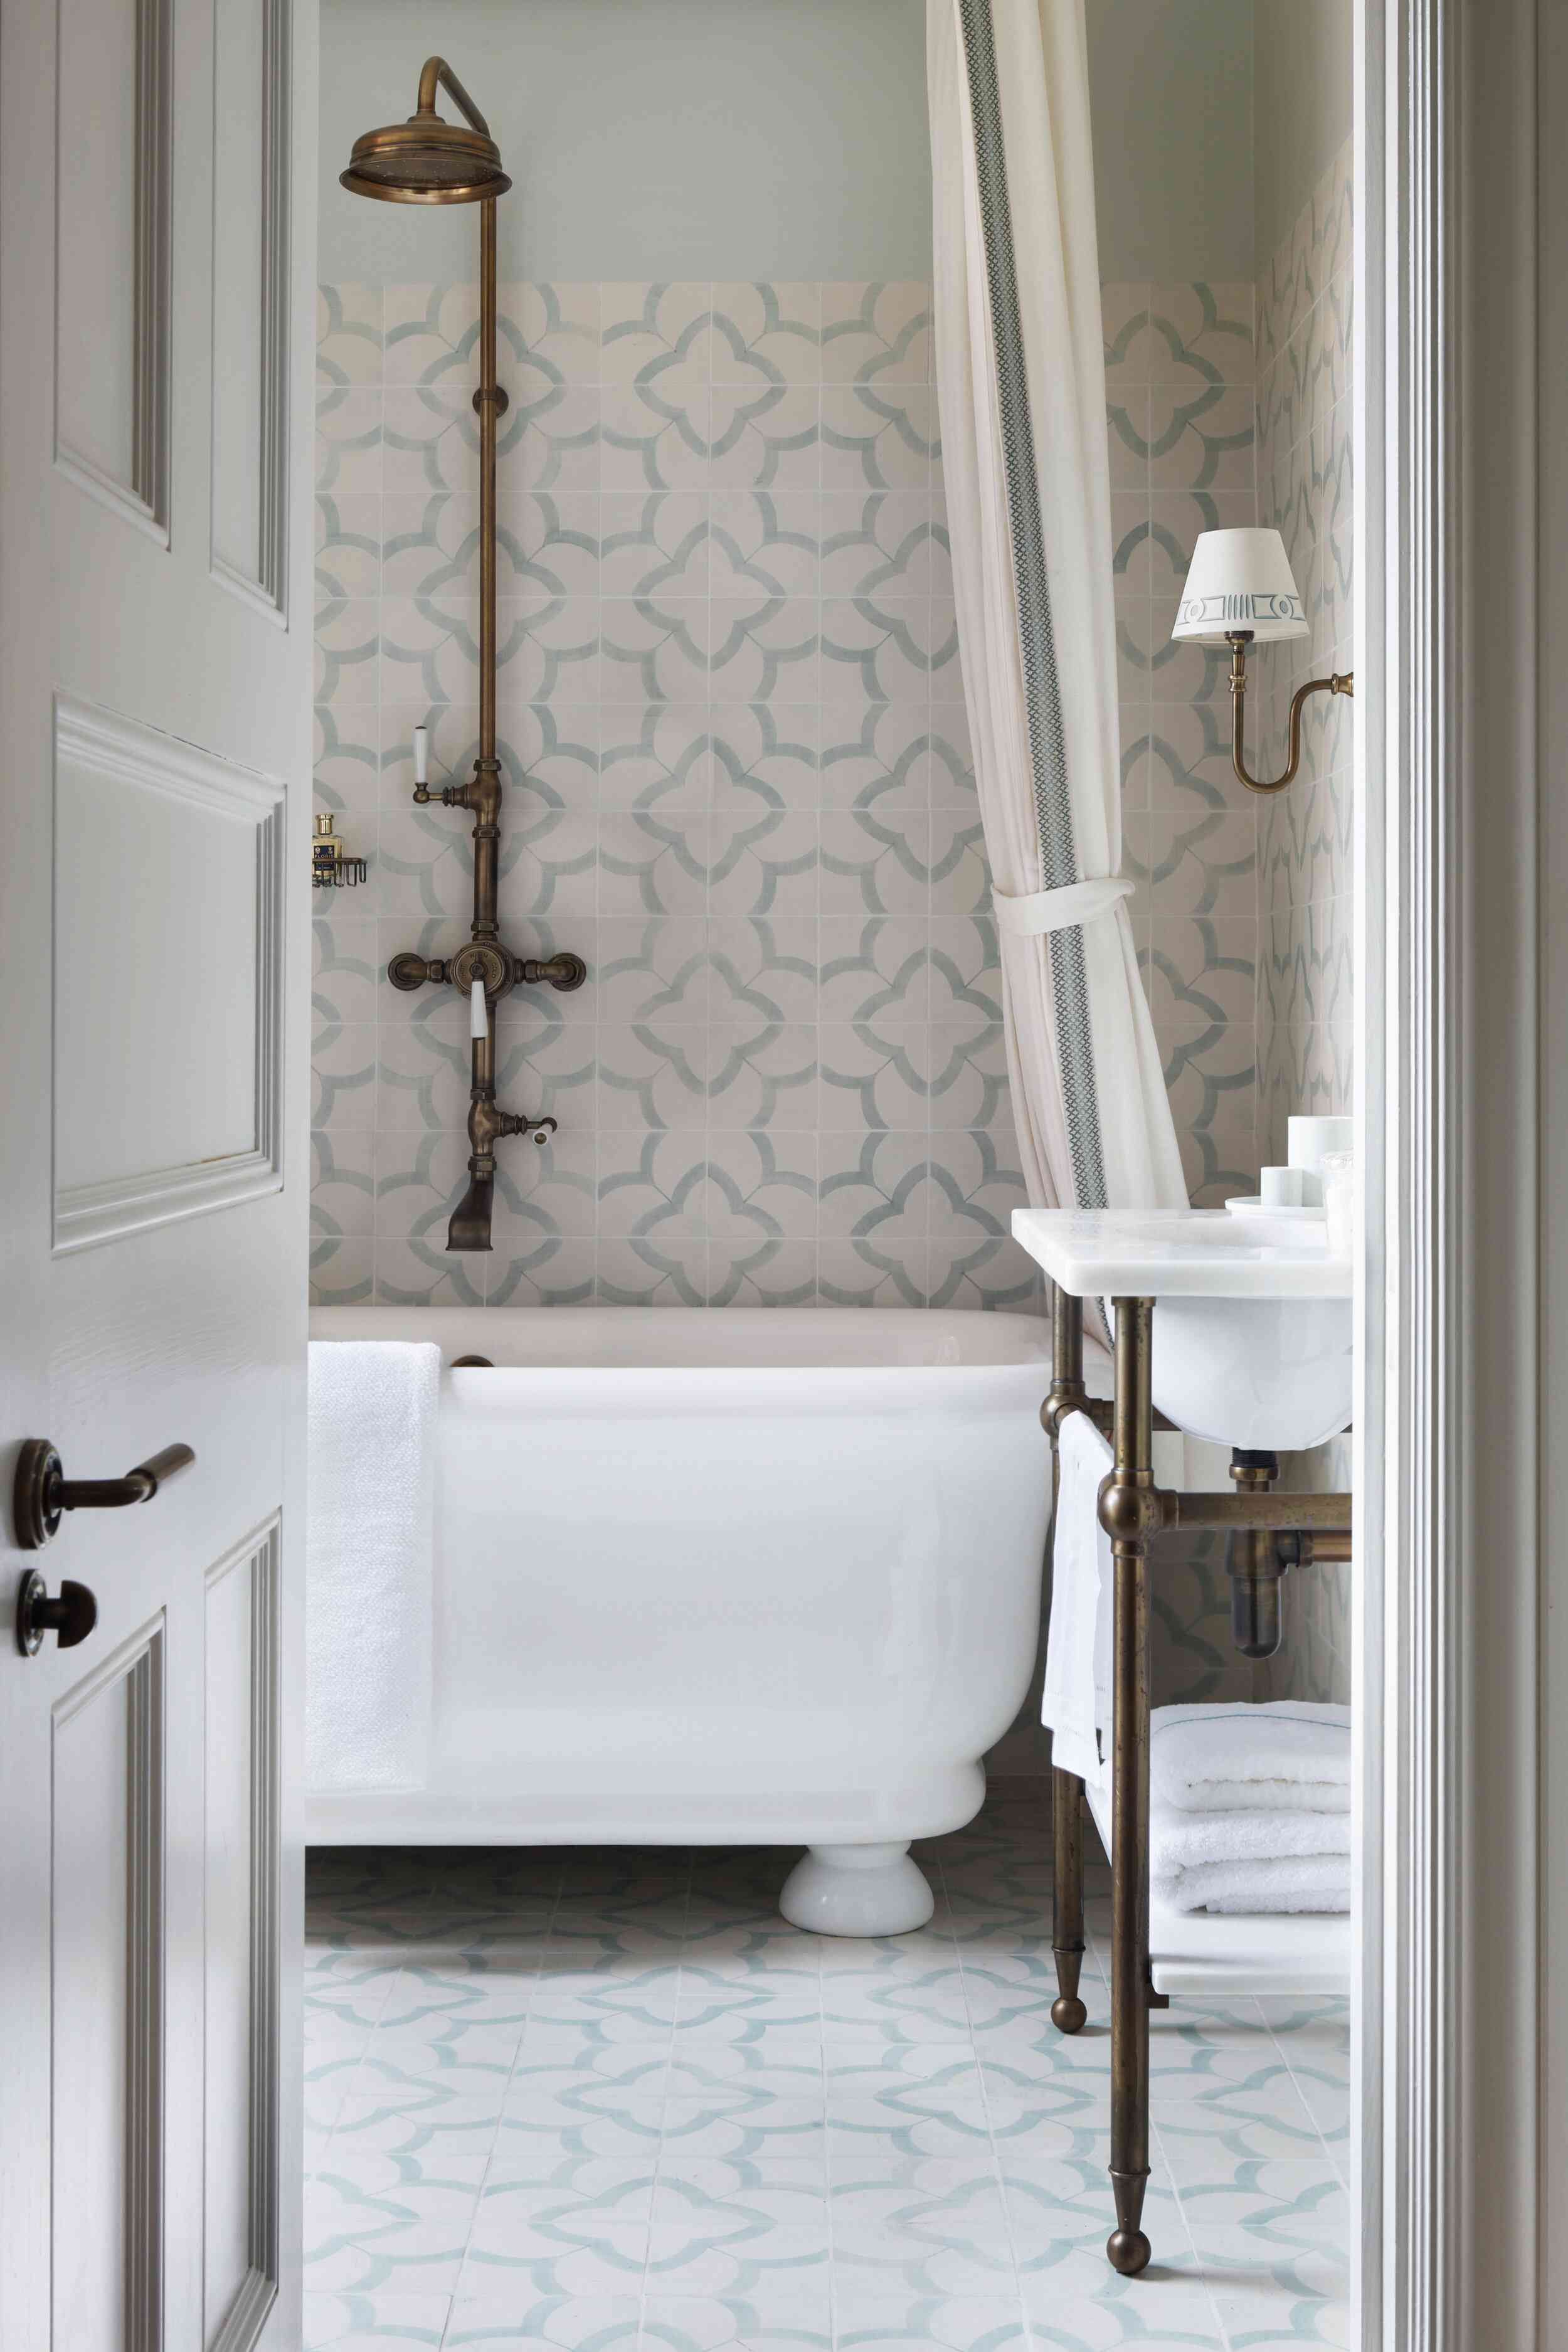 A small primary bathroom lined with pretty printed tiles